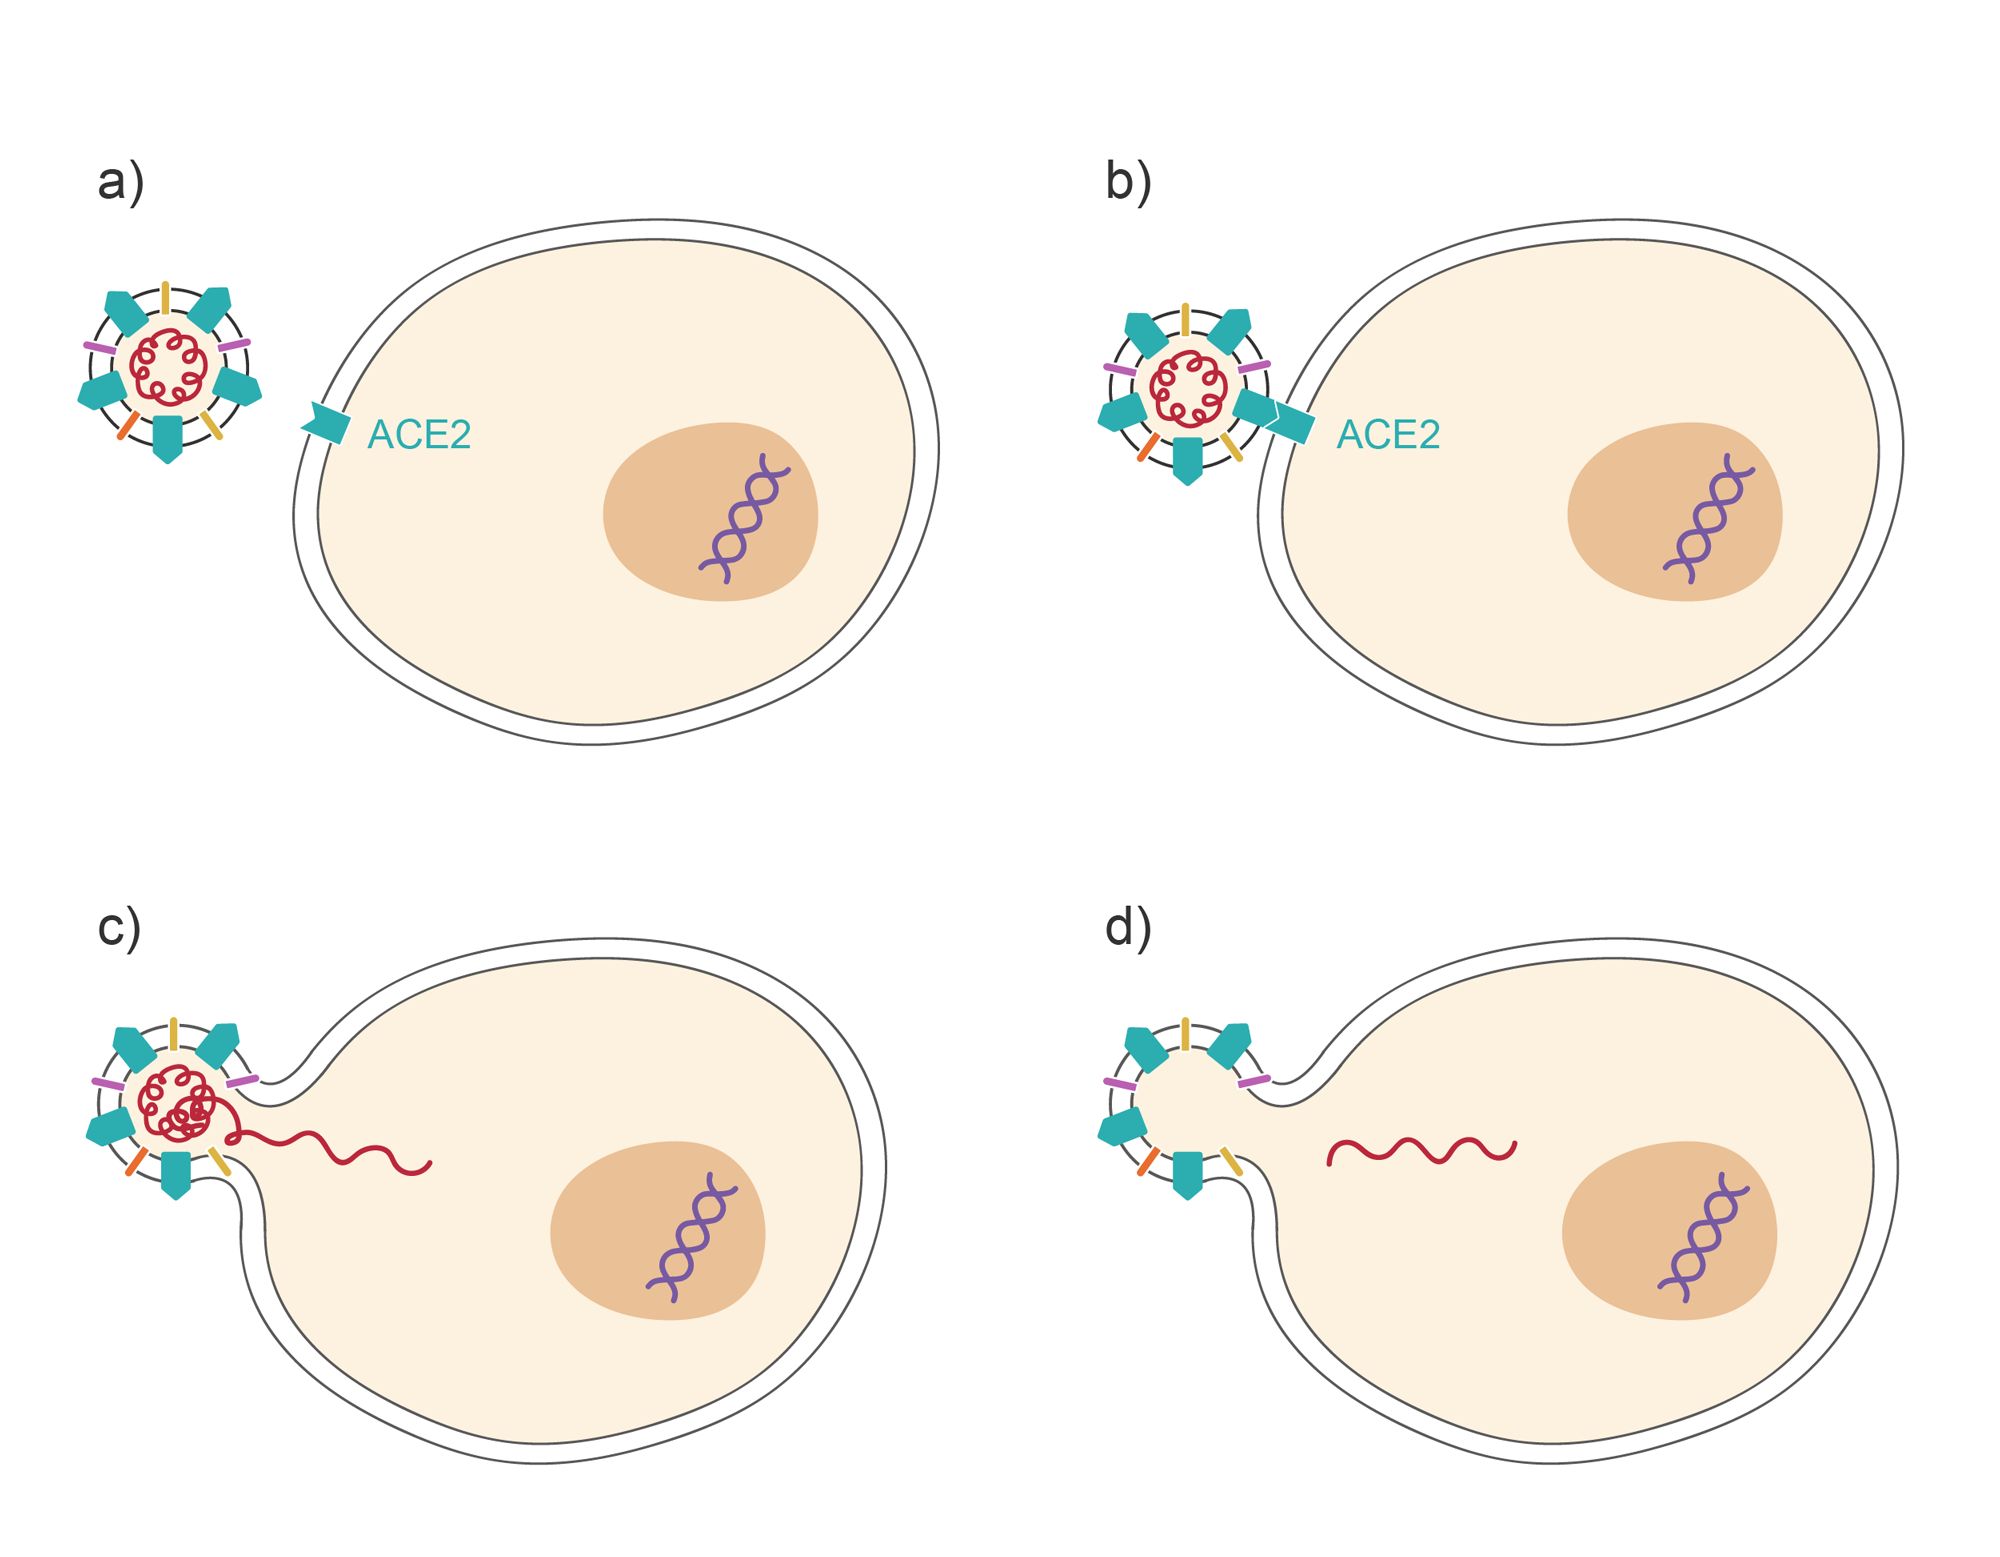 Series of images. Cell with virus. Cells with virus bound to receptor. Virus fusing with cell membrane. Viral contents in cell. Illustration.